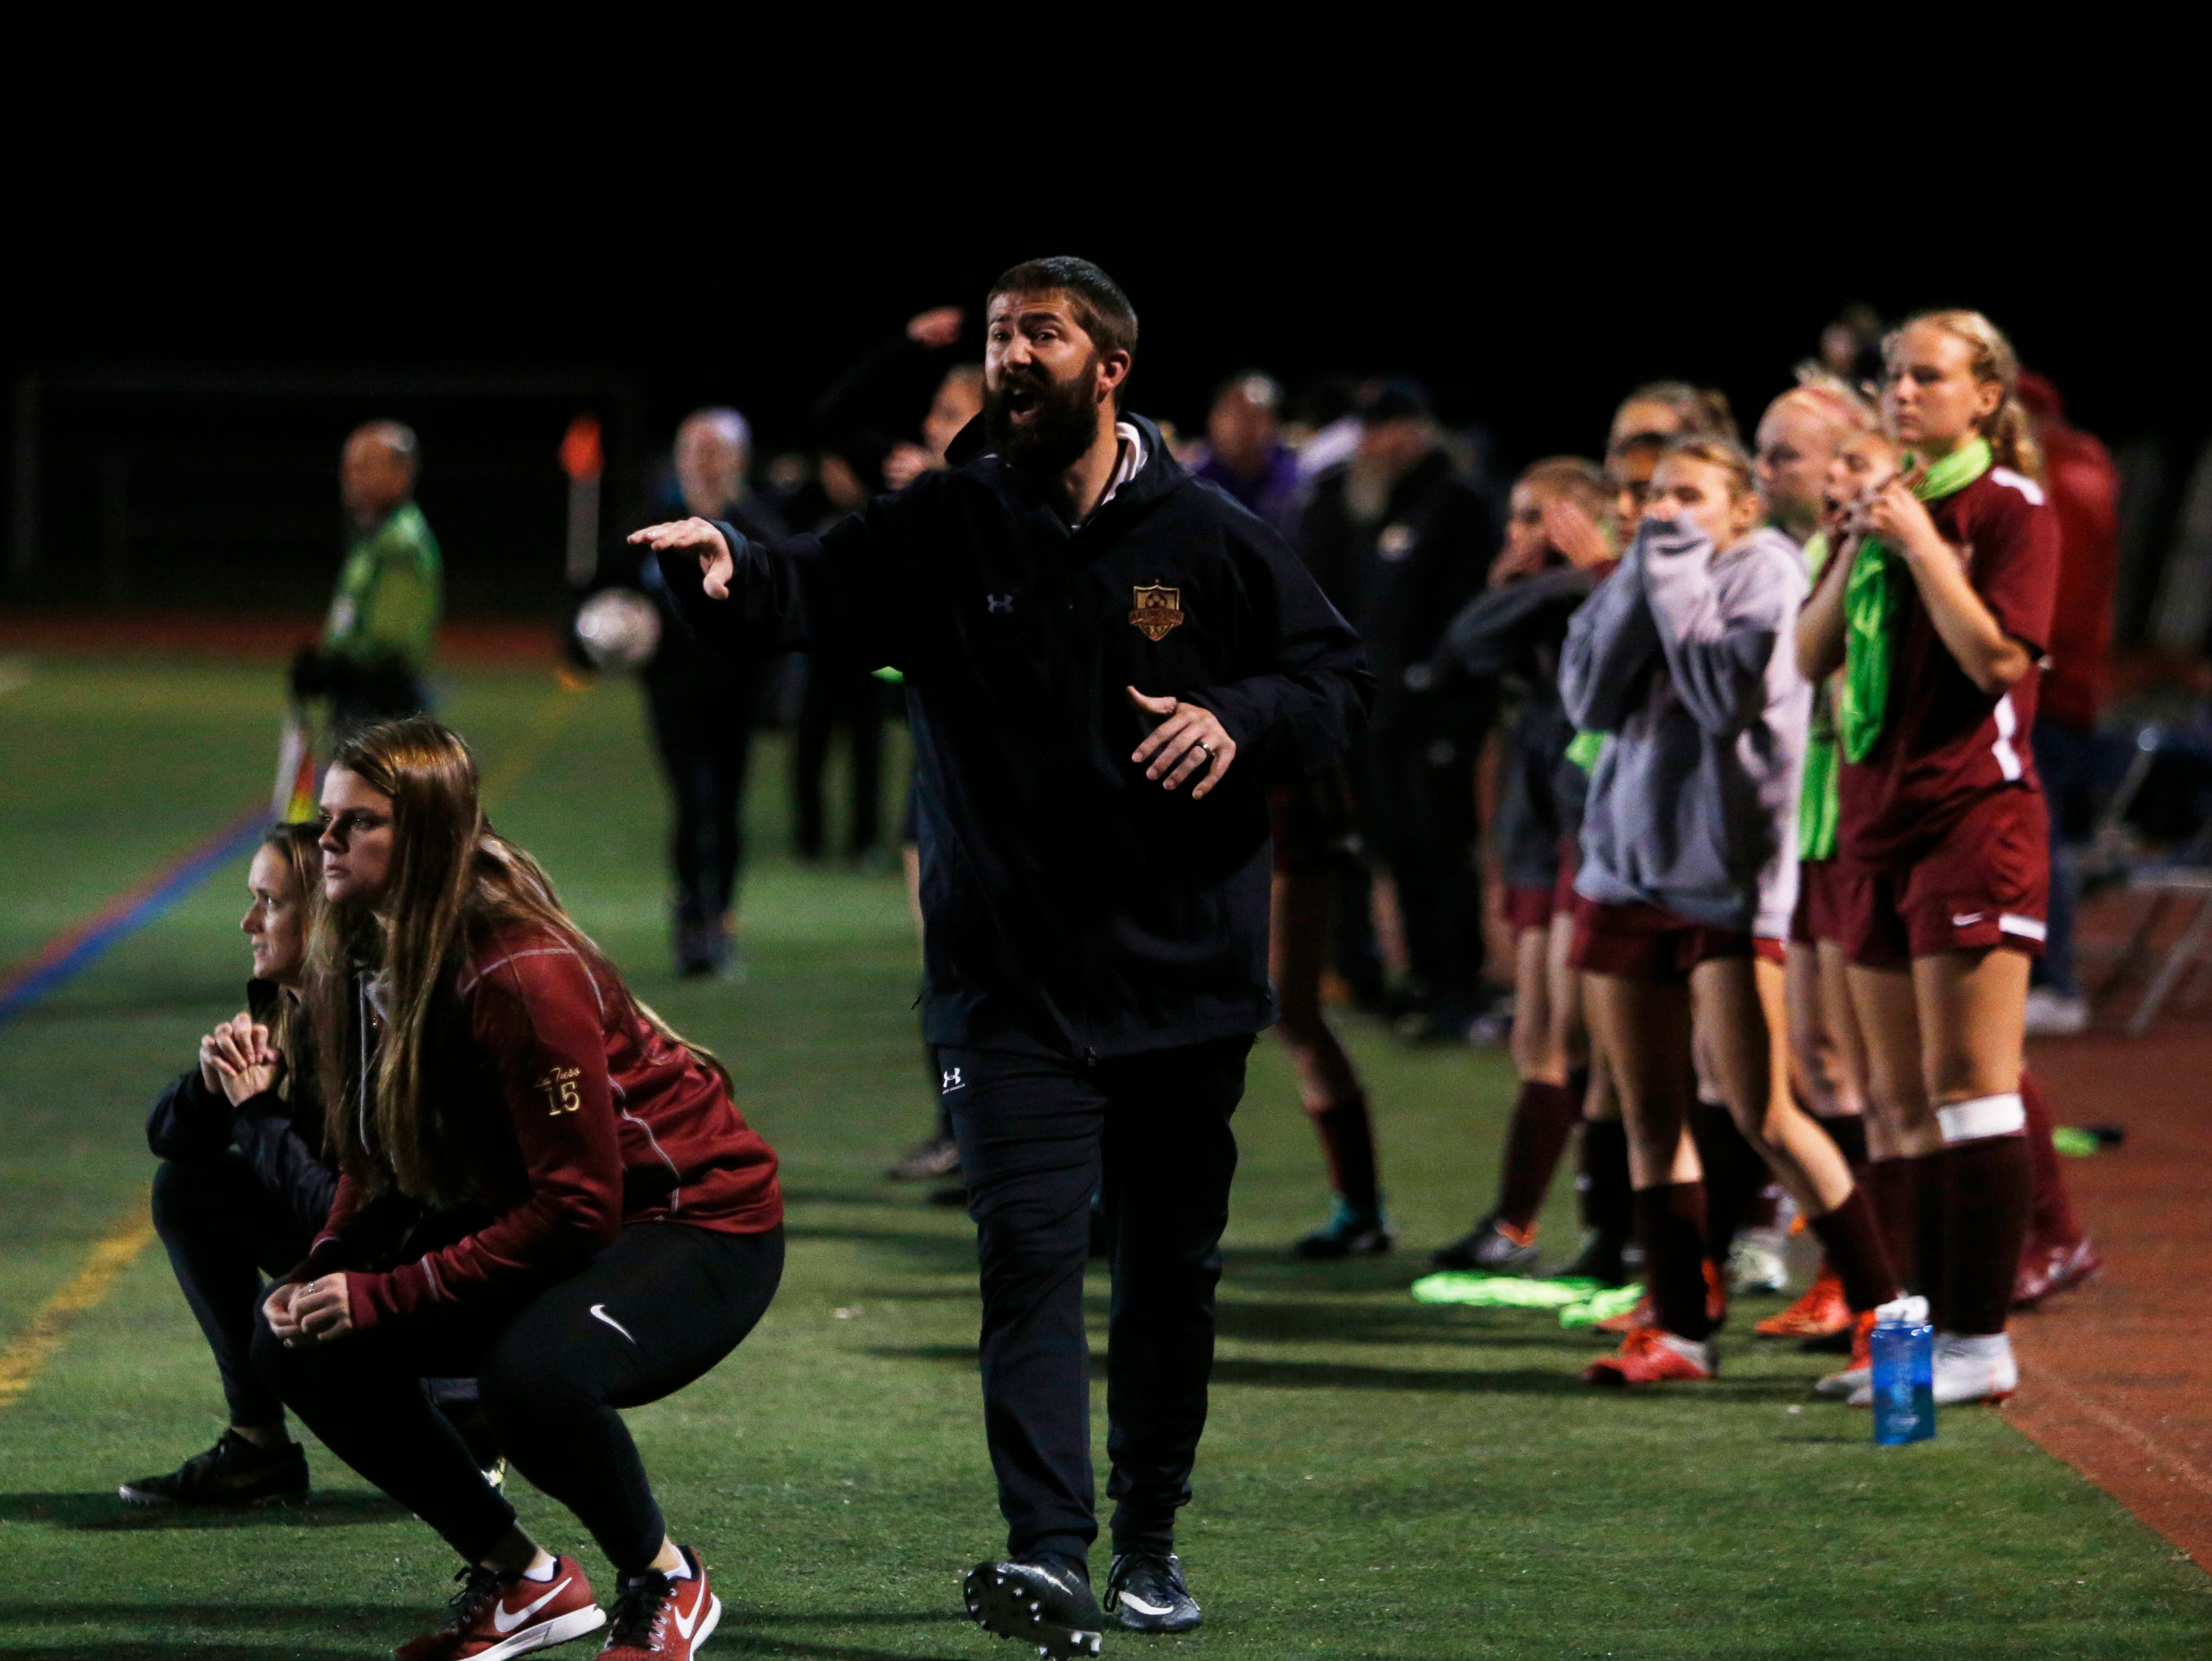 Arlington's assistant coach Jason Conklin shouts instructions to his players during Wednesday's class AA regional semifinal versus Monroe-Woodbury in Freedom Plains on October 31, 2018.